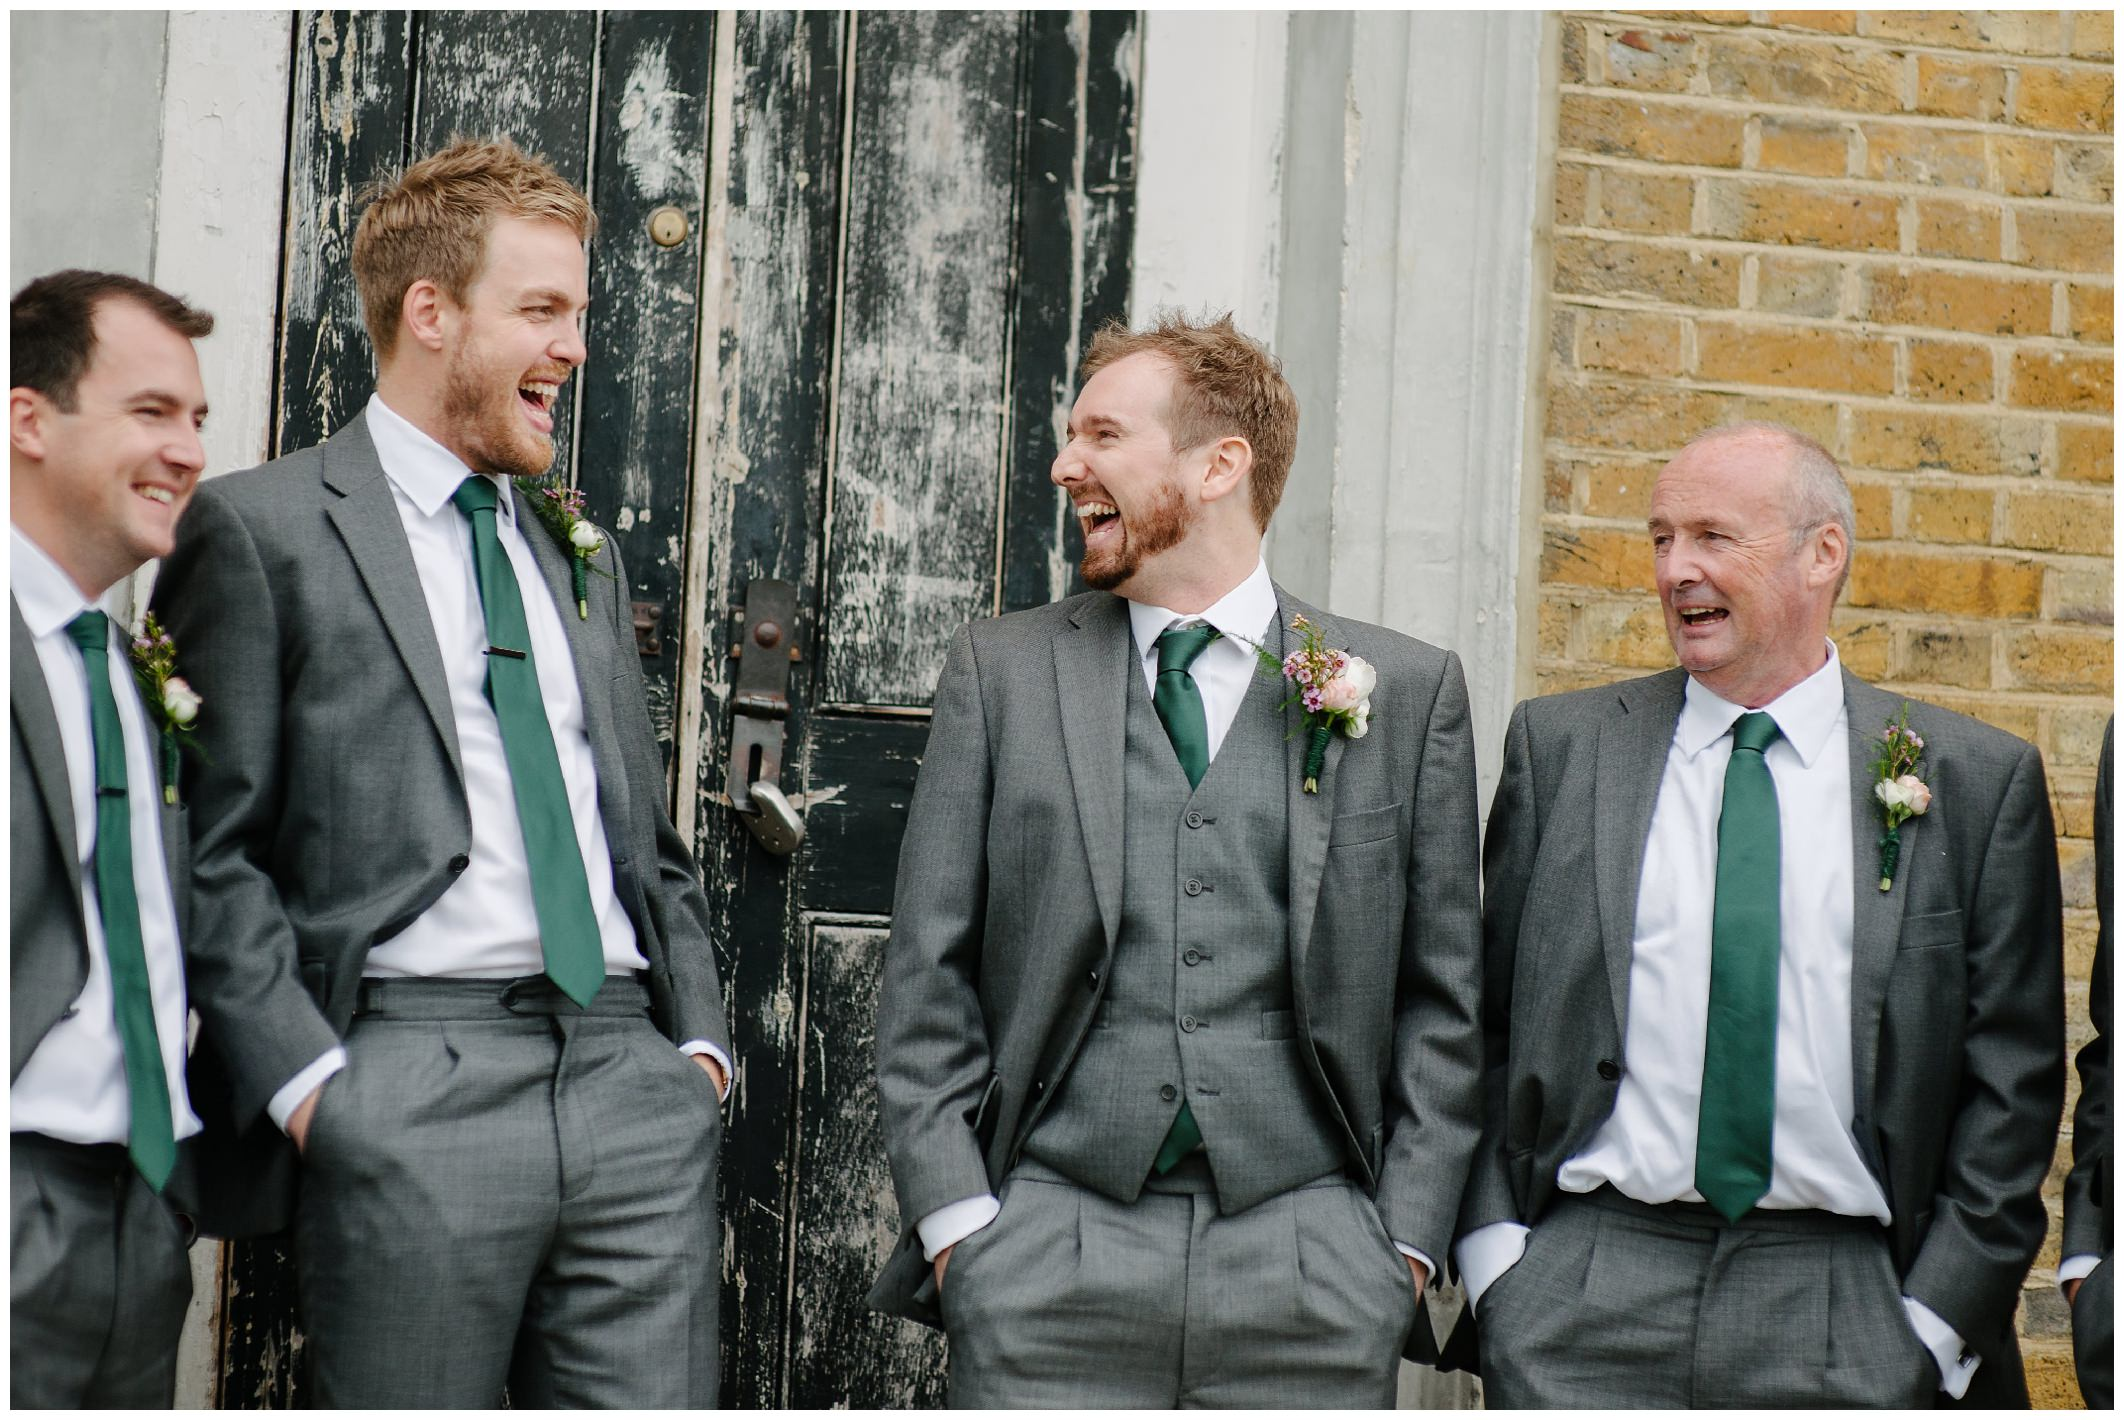 asylum_chapel_peckham_rosendale_wedding_jude_browne_photography_0032.jpg